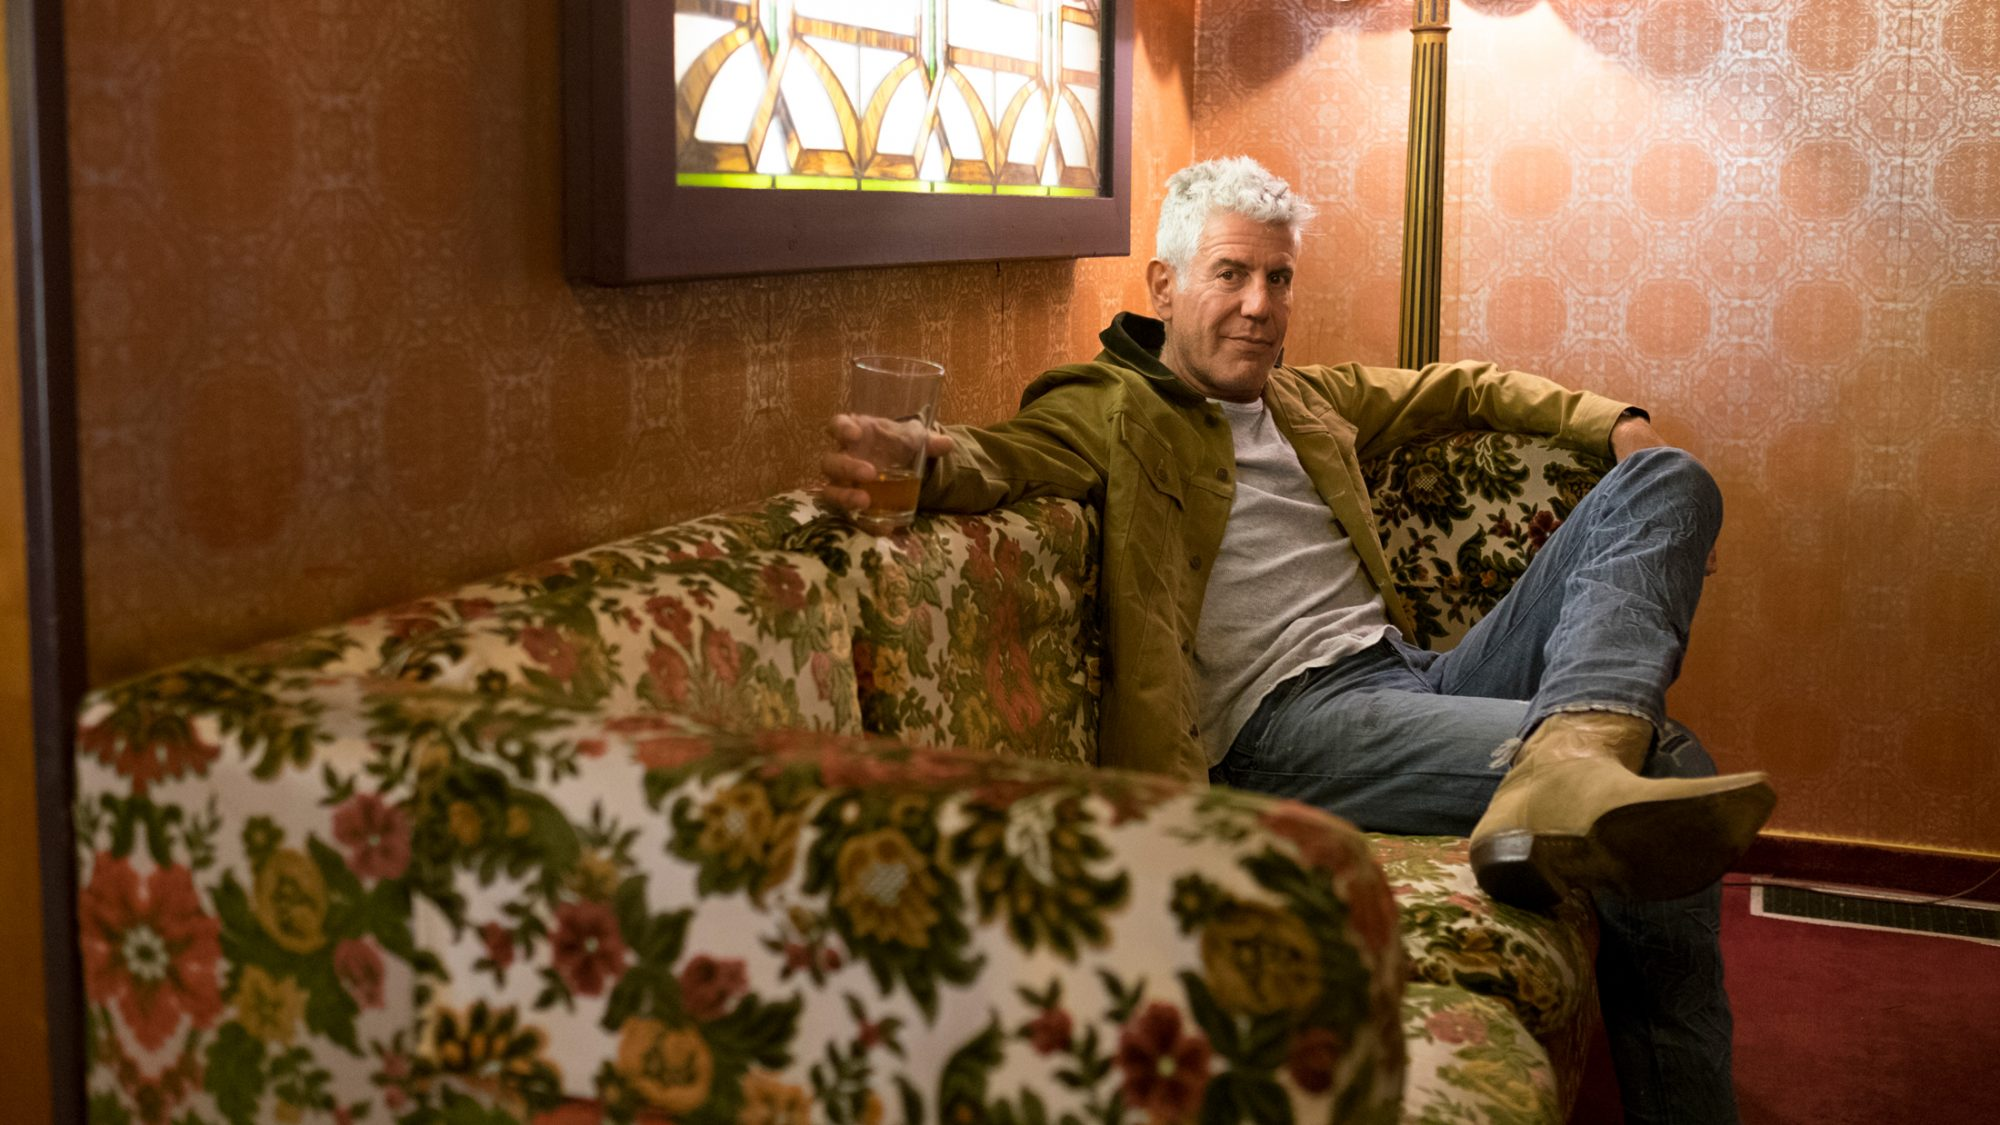 The World According to Anthony Bourdain